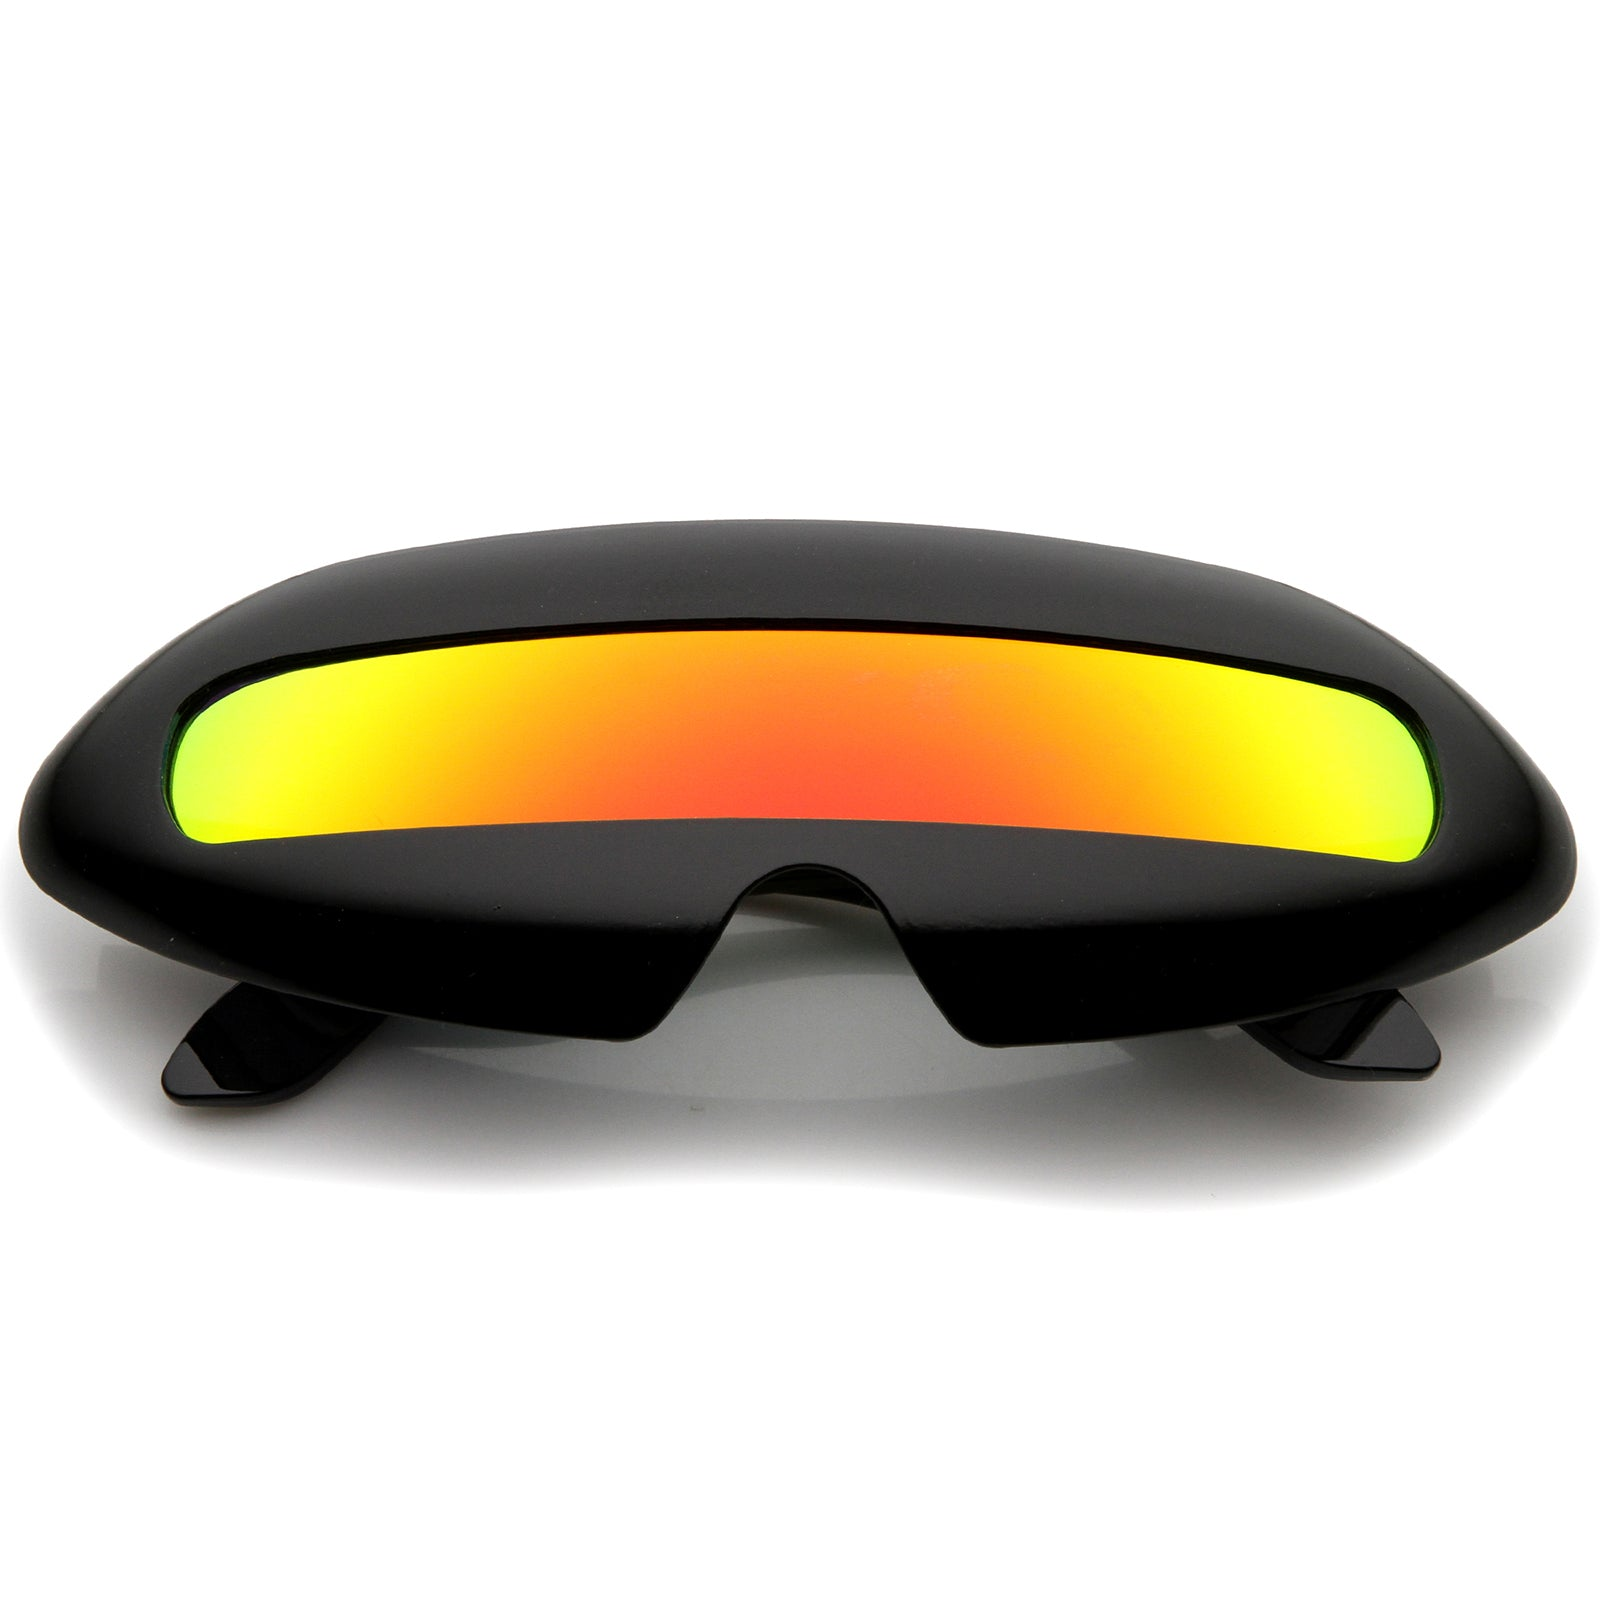 Futuristic Costume Single Shield Colored Mirror Lens Novelty Wrap Sunglasses 70mm - sunglass.la - 1